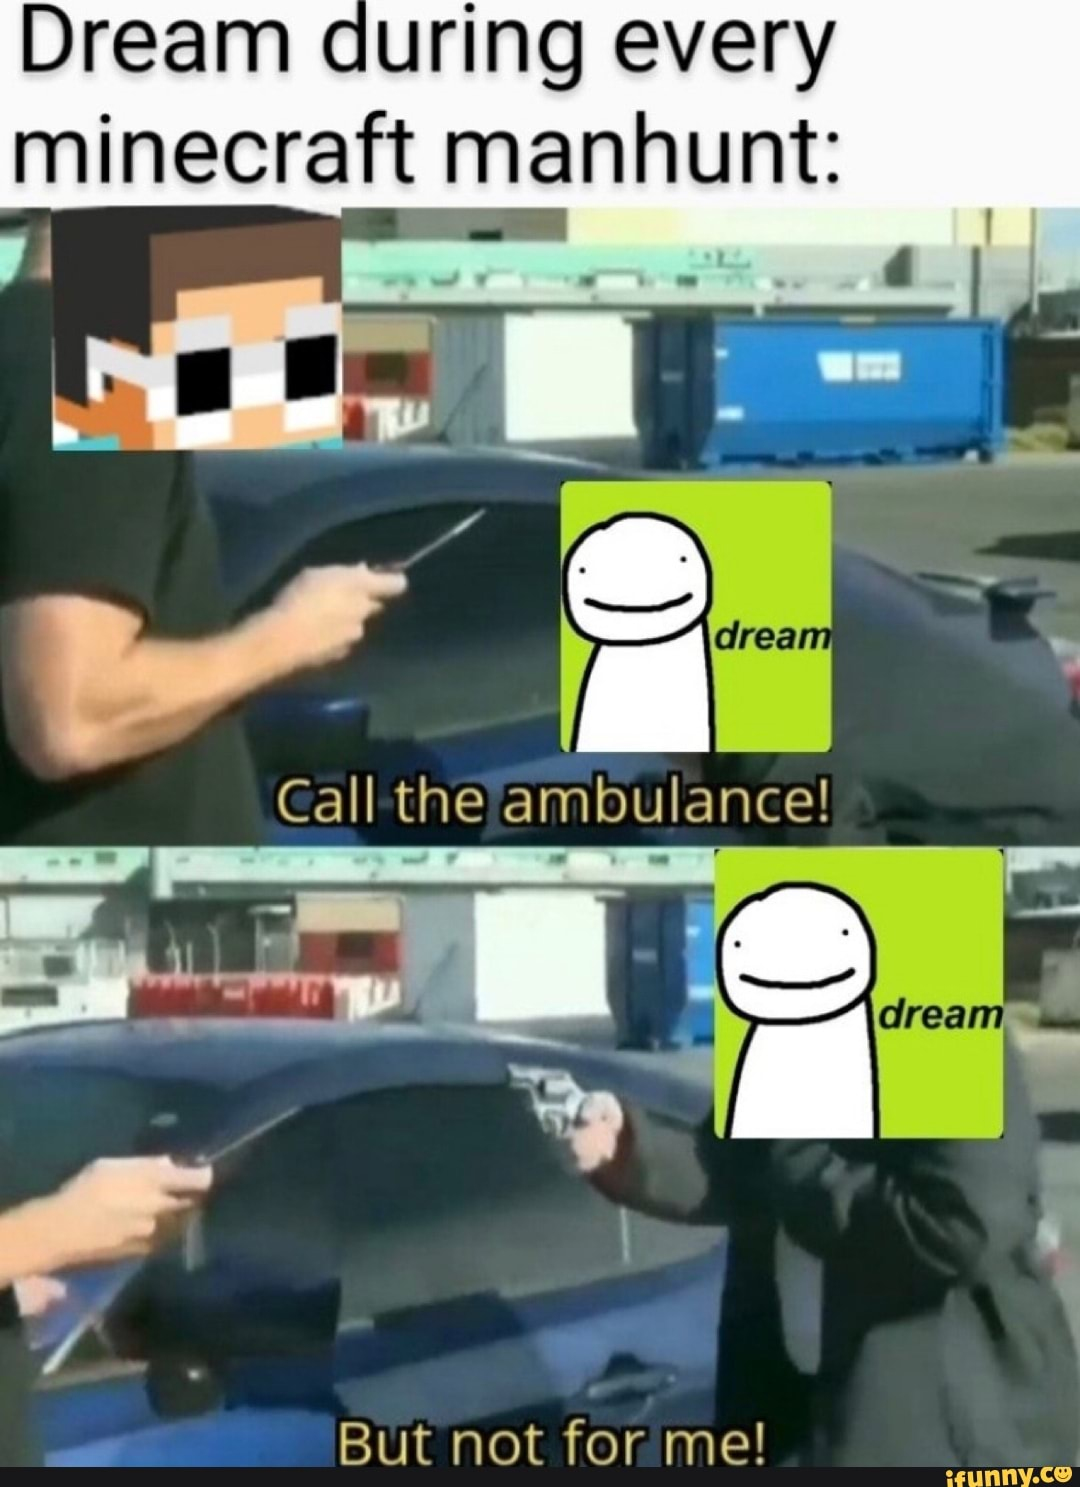 Dream During Every Minecraft Manhunt Call The Ambulance But Not For Me Ifunny Can i call him or her an 'ambulance attendant'? dream during every minecraft manhunt